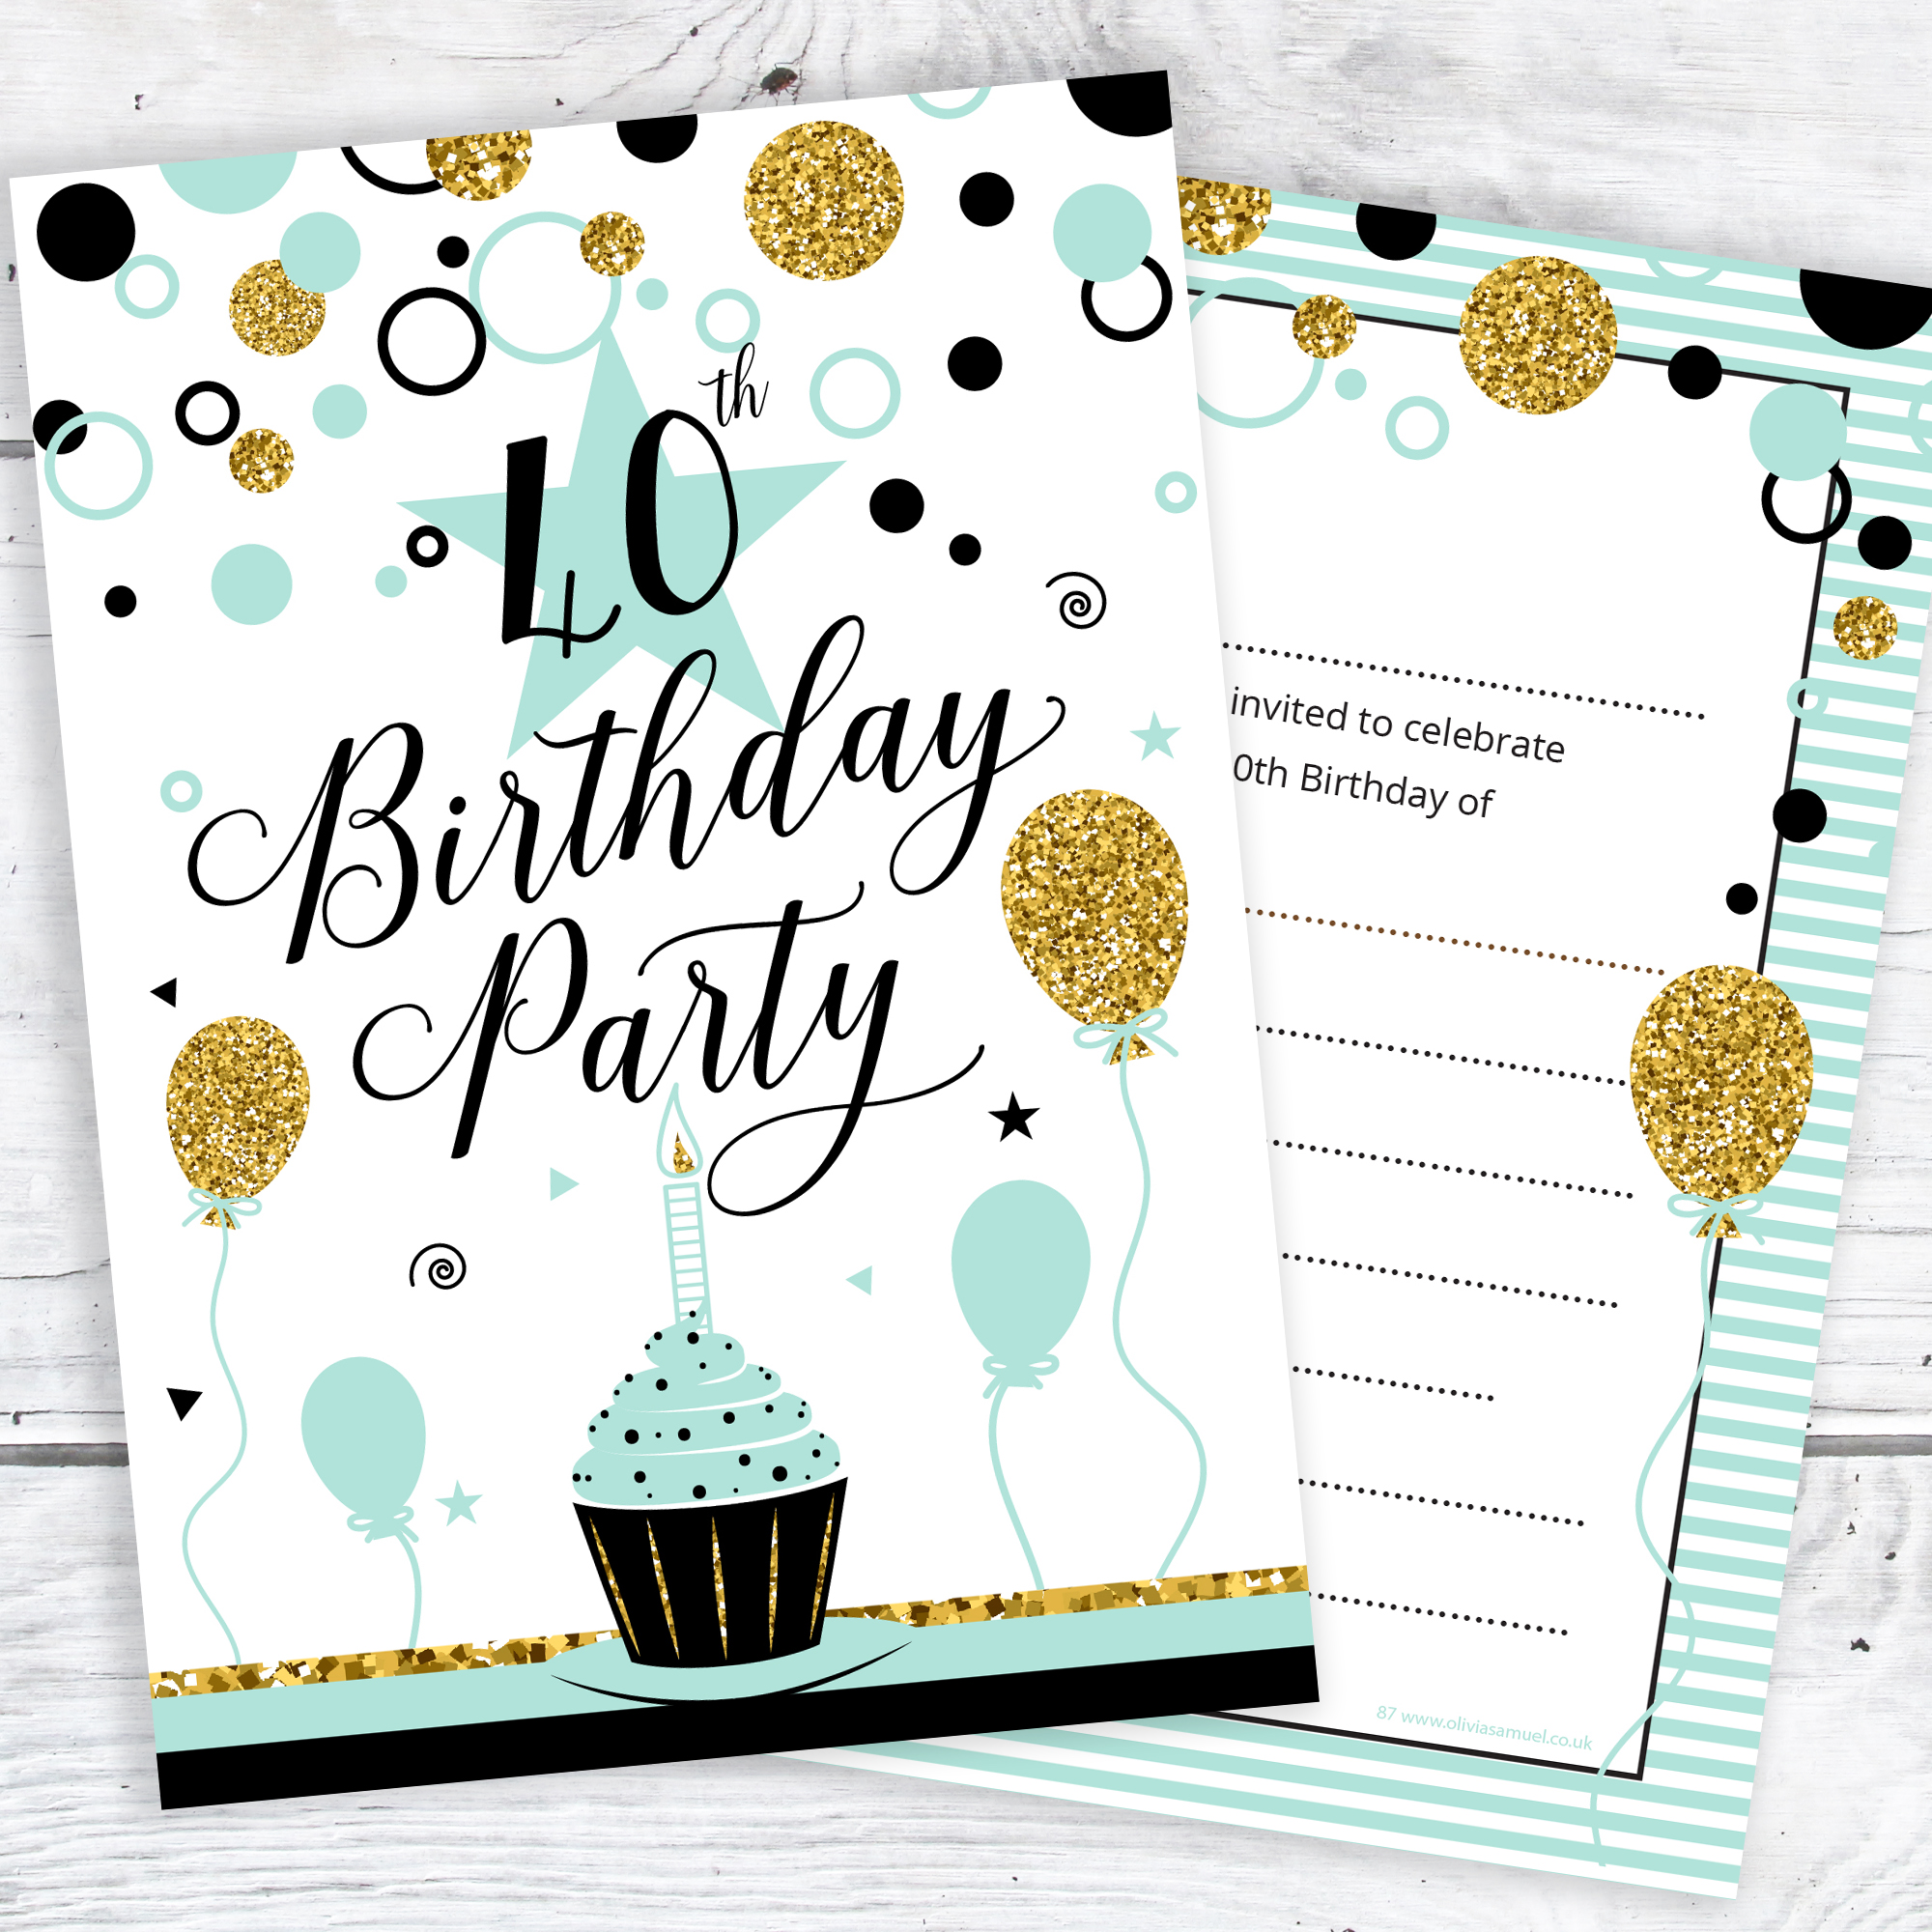 40th Birthday Party Invitations – Chic Design with Faux Glitter Effect – Ready to Write with Envelopes (Pack 10)